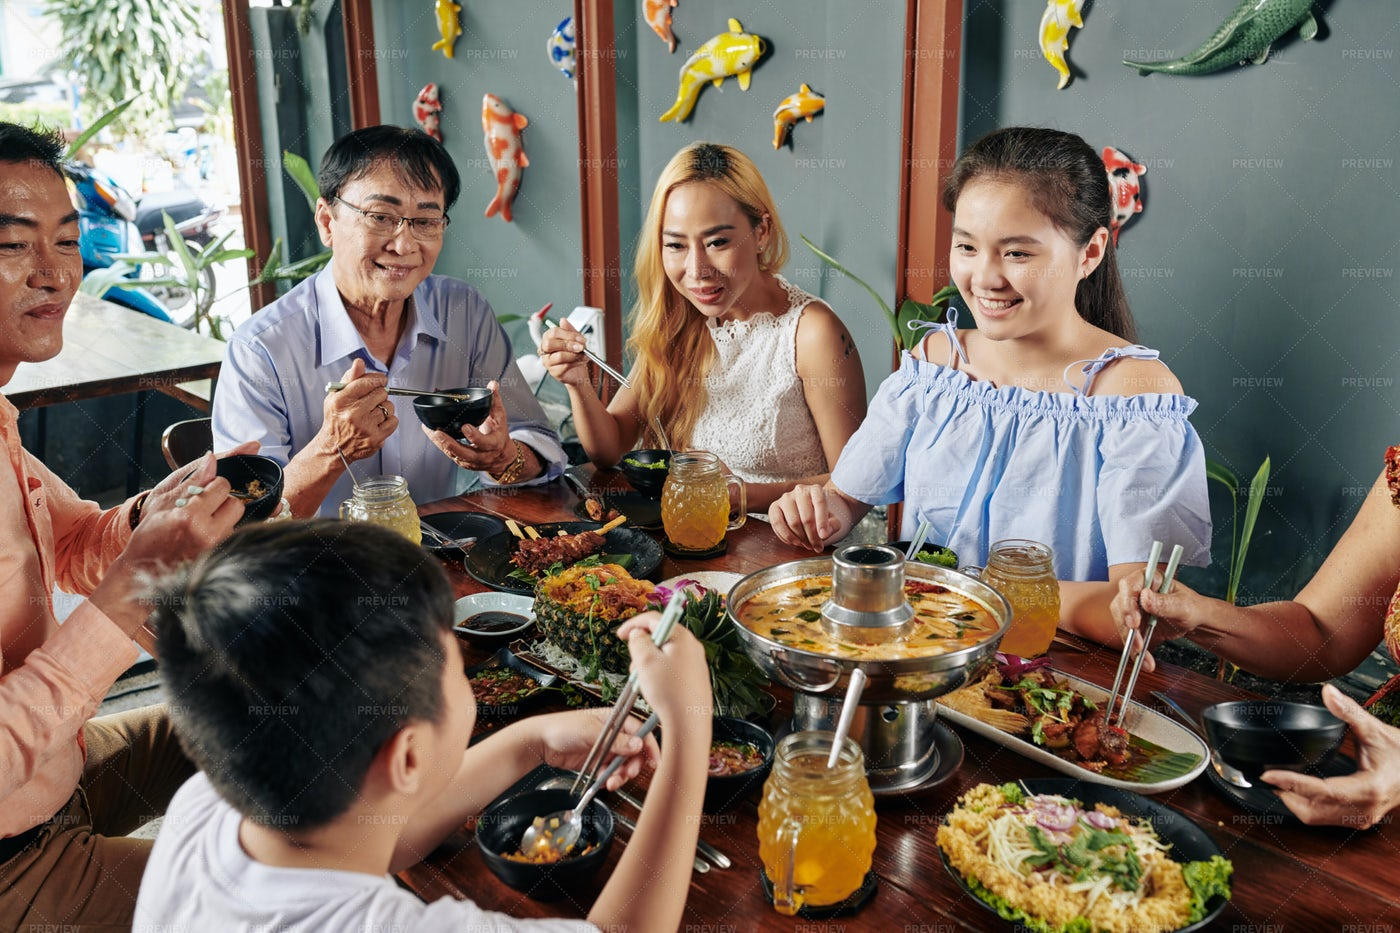 Happy Family Eating Dinner Together: Stock Photos